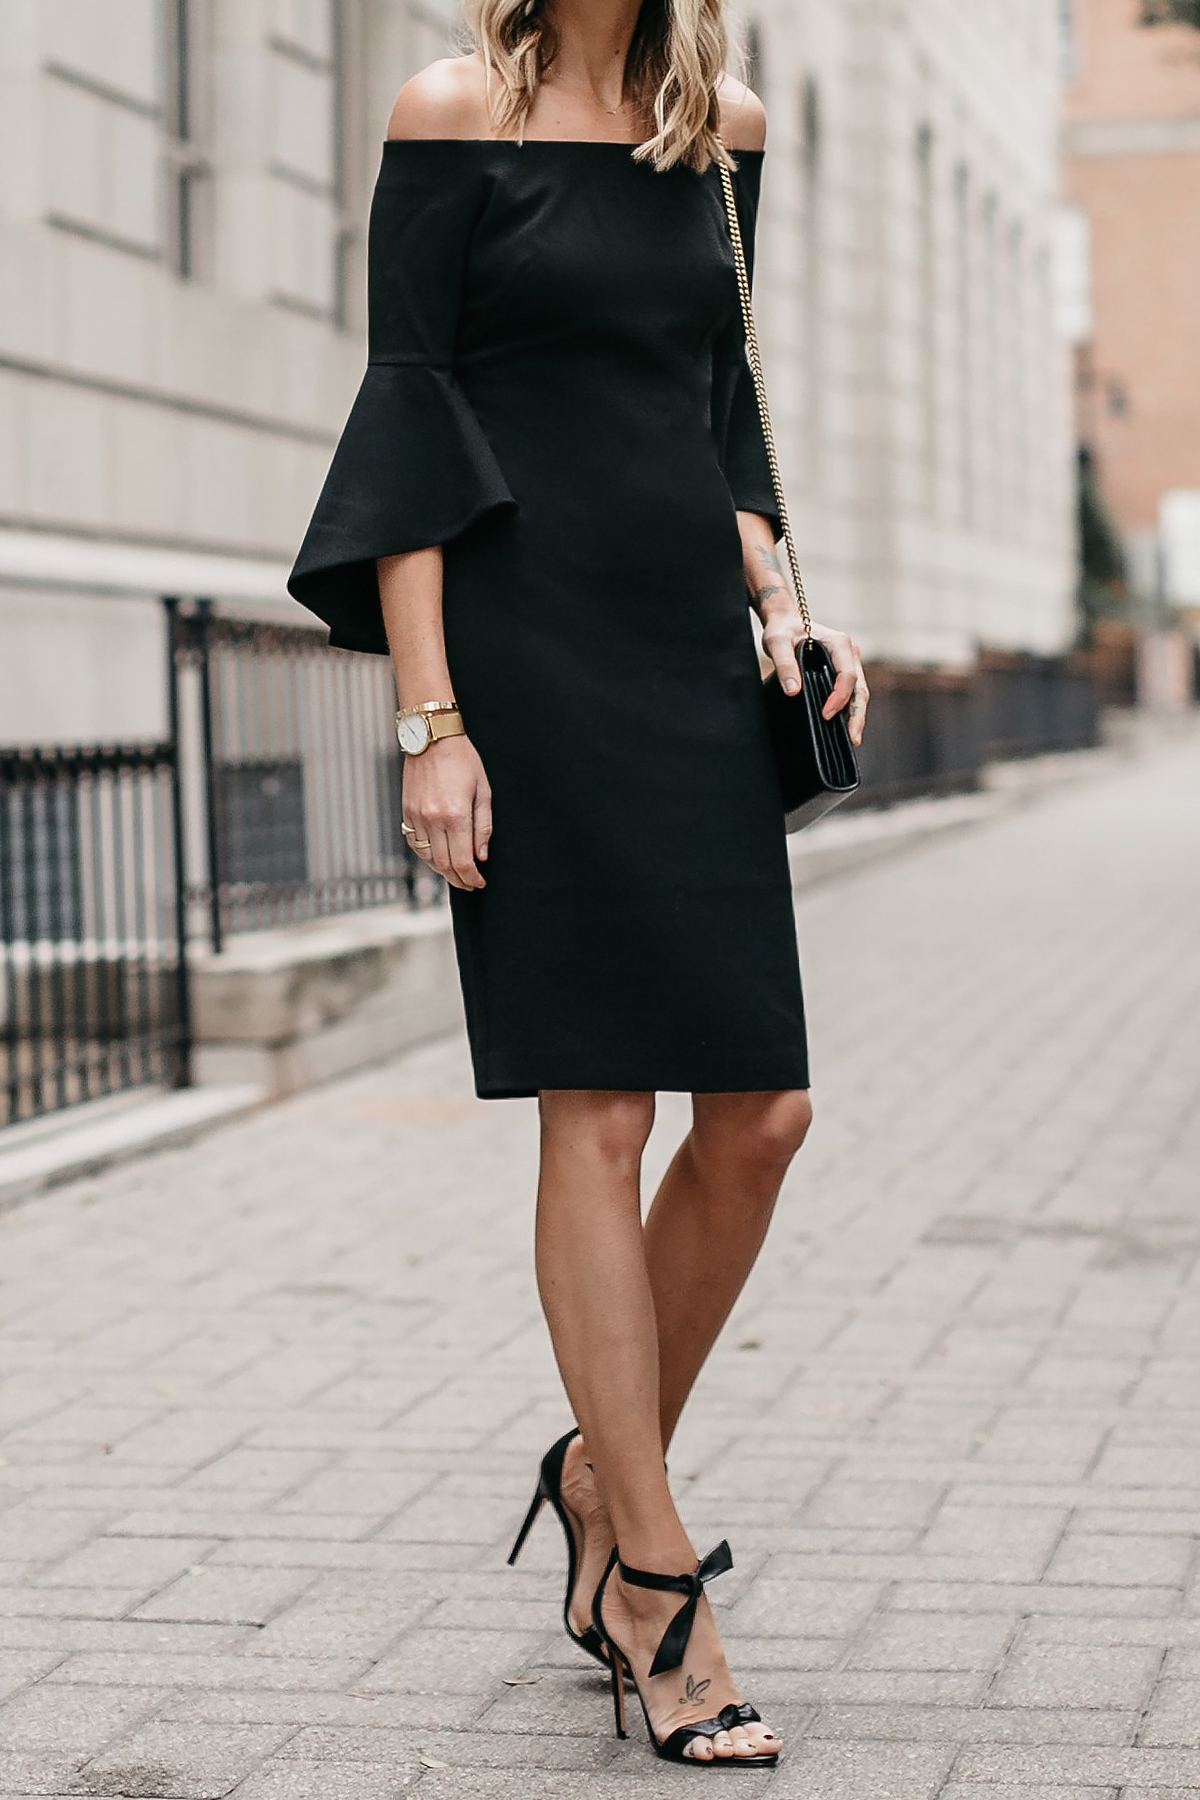 Off-the-Shoulder Black Holiday Dress Alexandre Birman Clarita Ankle Tie Black Heels Fashion Jackson Dallas Blogger Fashion Blogger Street Style